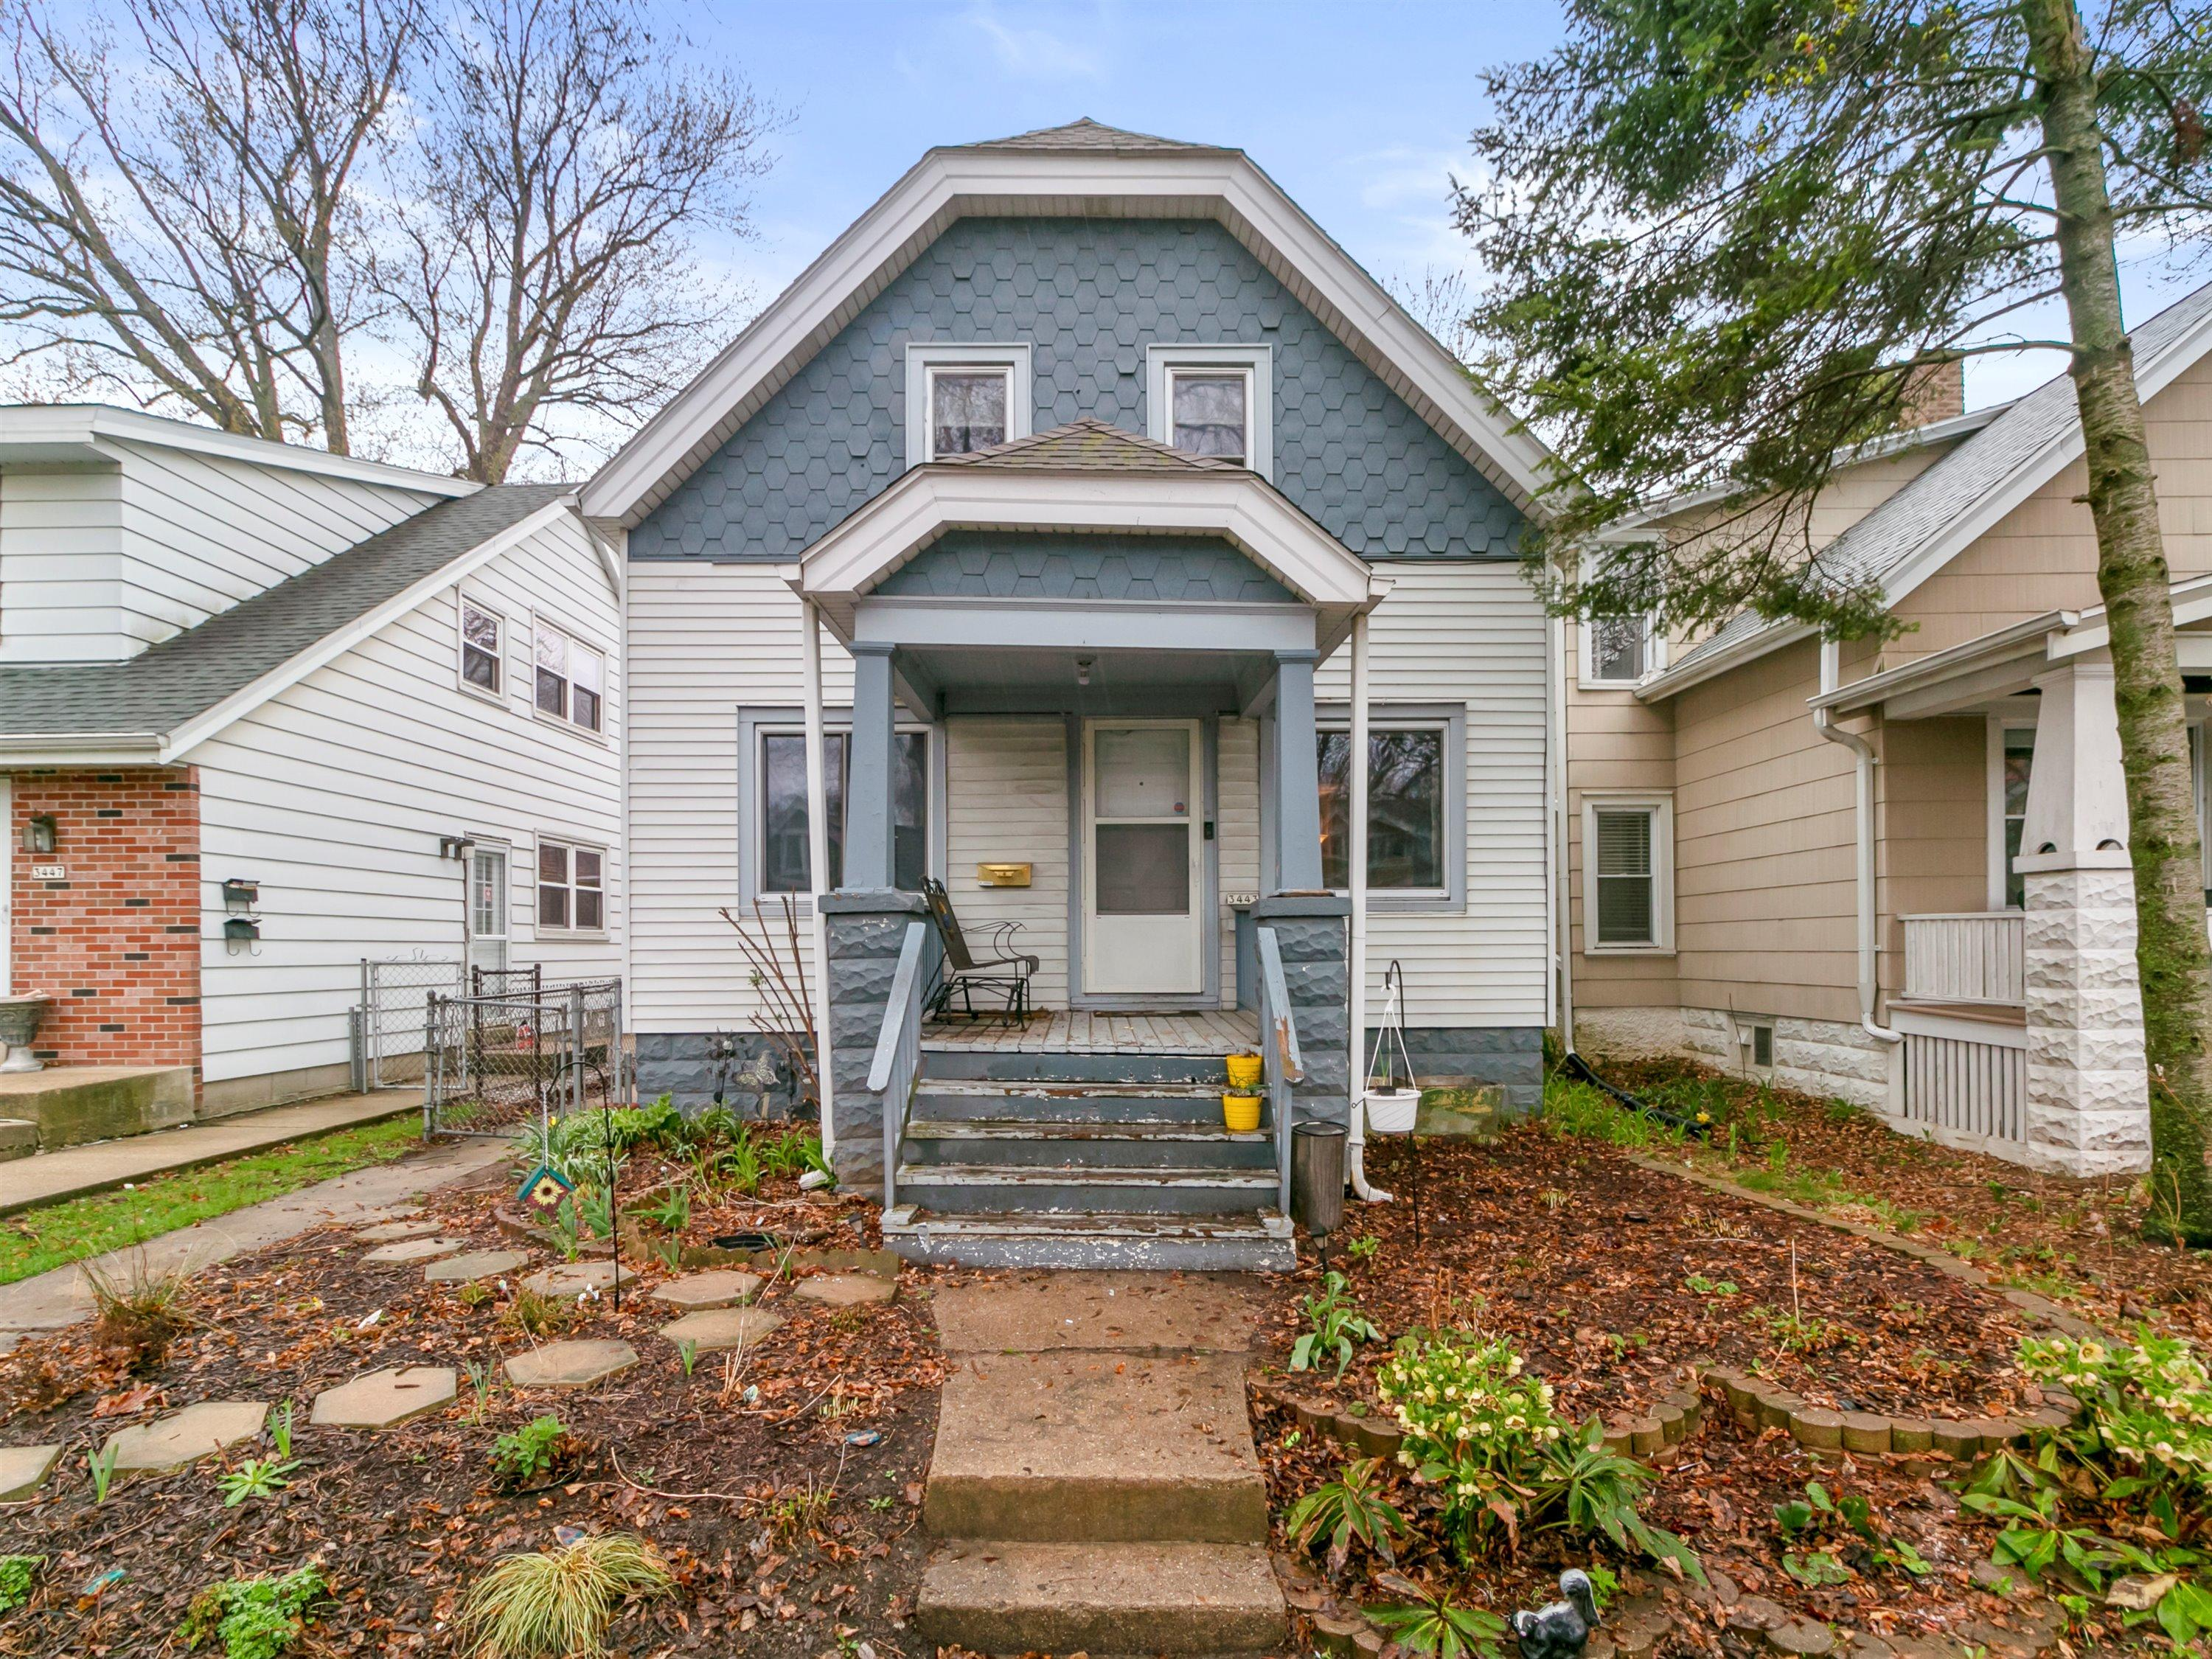 Photo of 3443 S Delaware Ave, Milwaukee, WI 53207